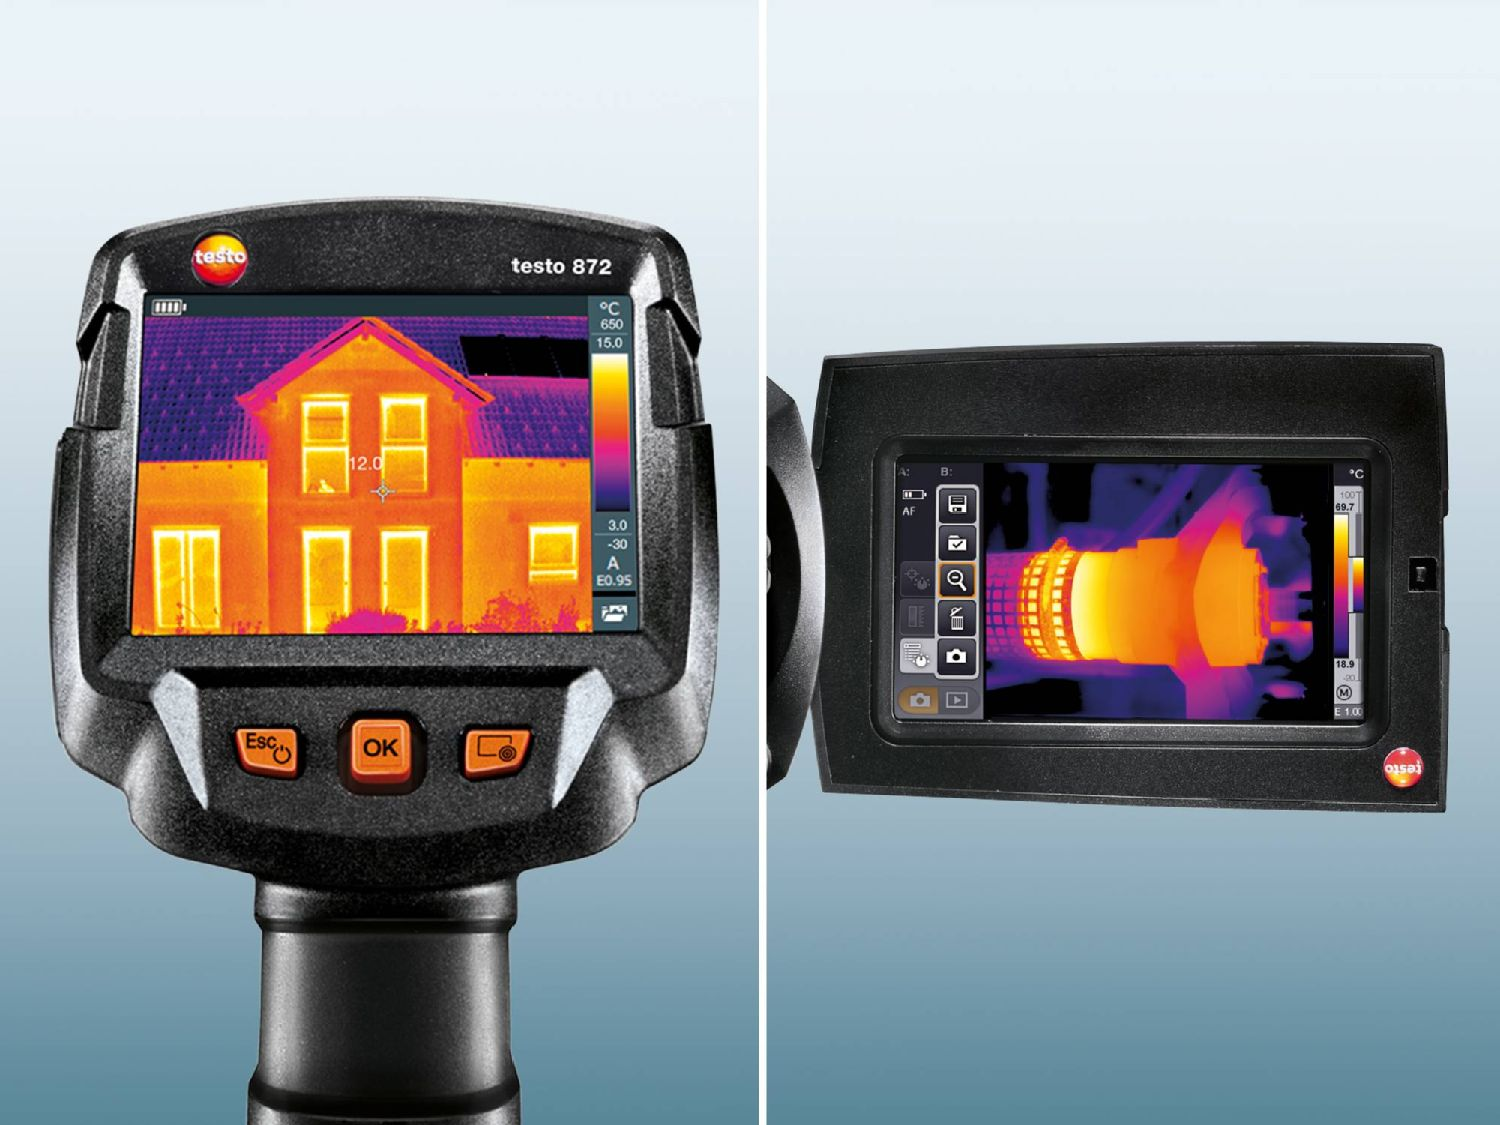 testo-872-testo-890-thermography-building-display-2000x1500.jpg